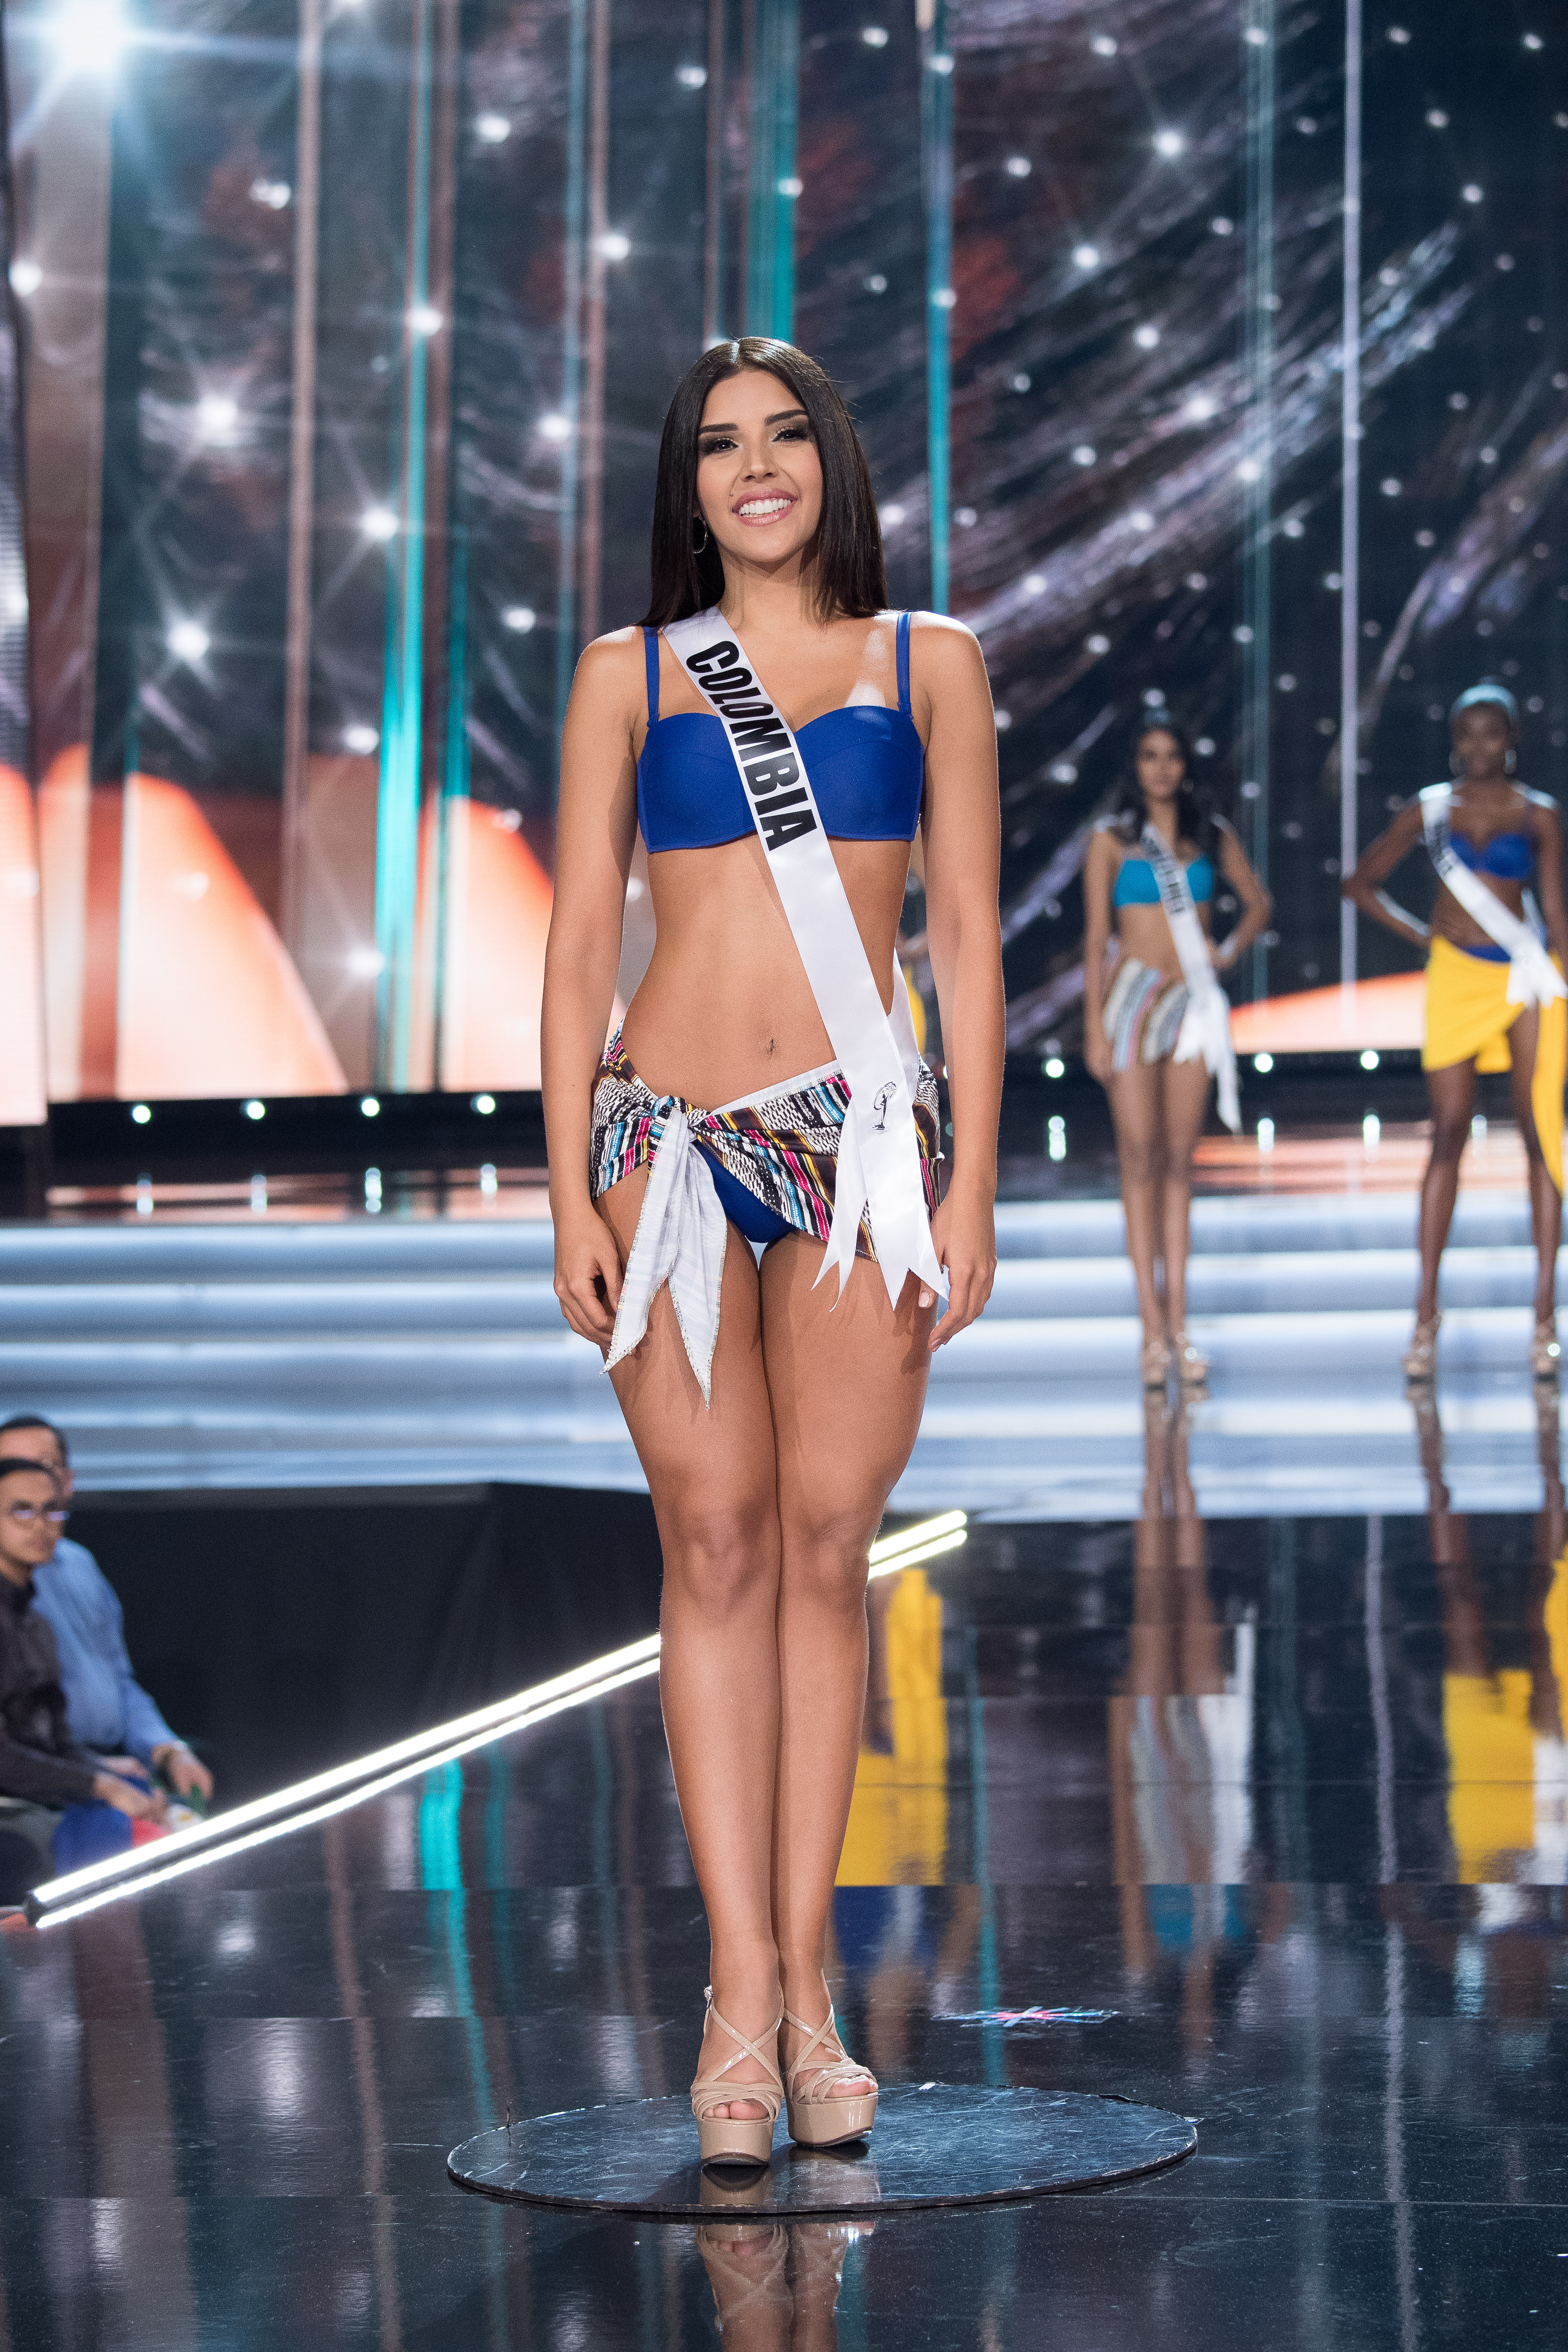 Colombia's Laura Gonzalez is this year's 1st runner-up. Photo from the Miss Universe Organization